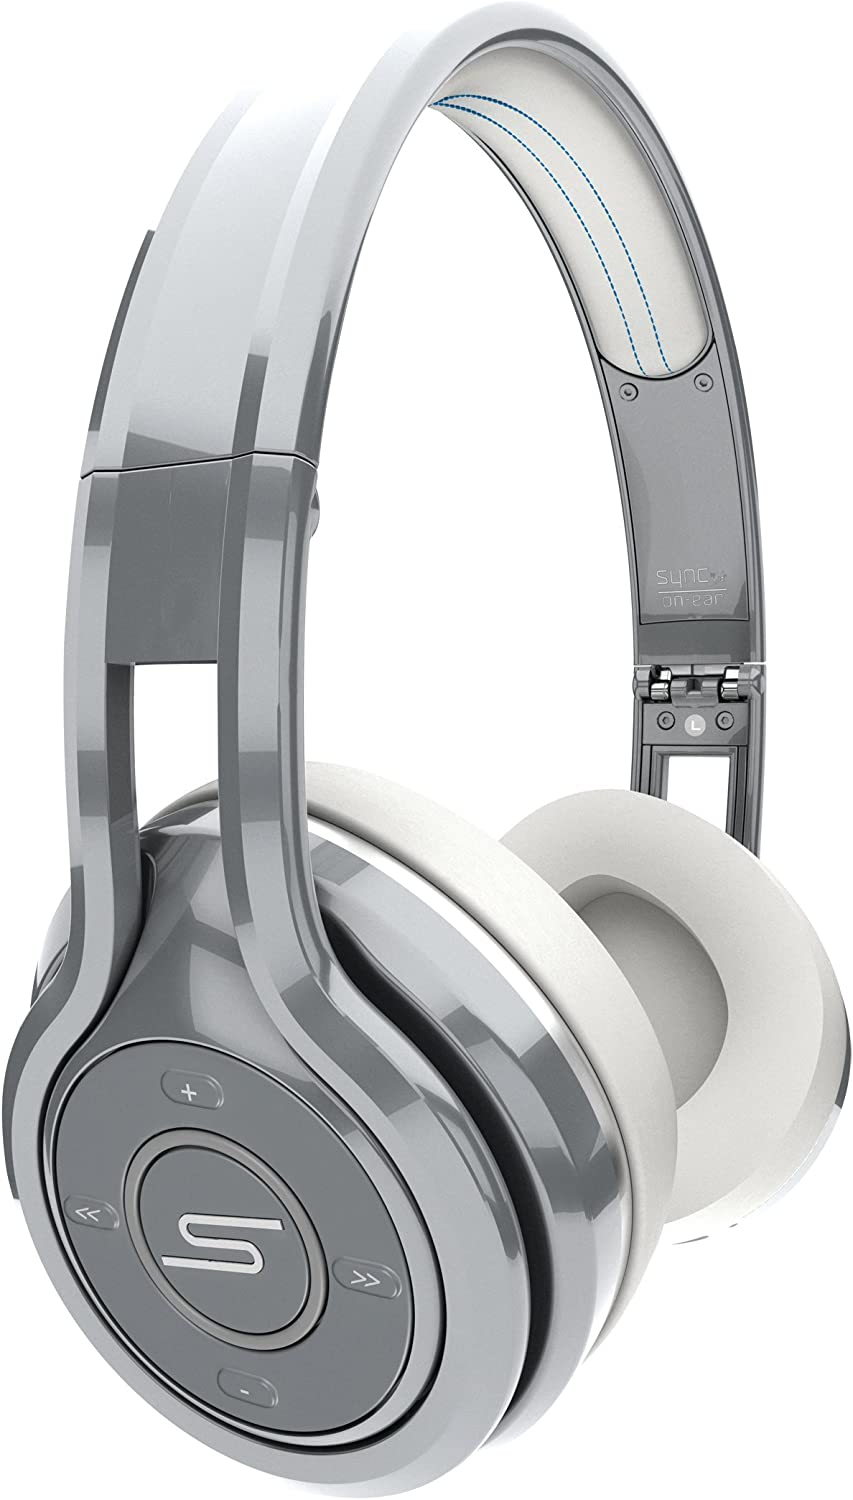 SMS Audio SYNC by 50 Bluetooth Wireless On-Ear Headphones - Silver